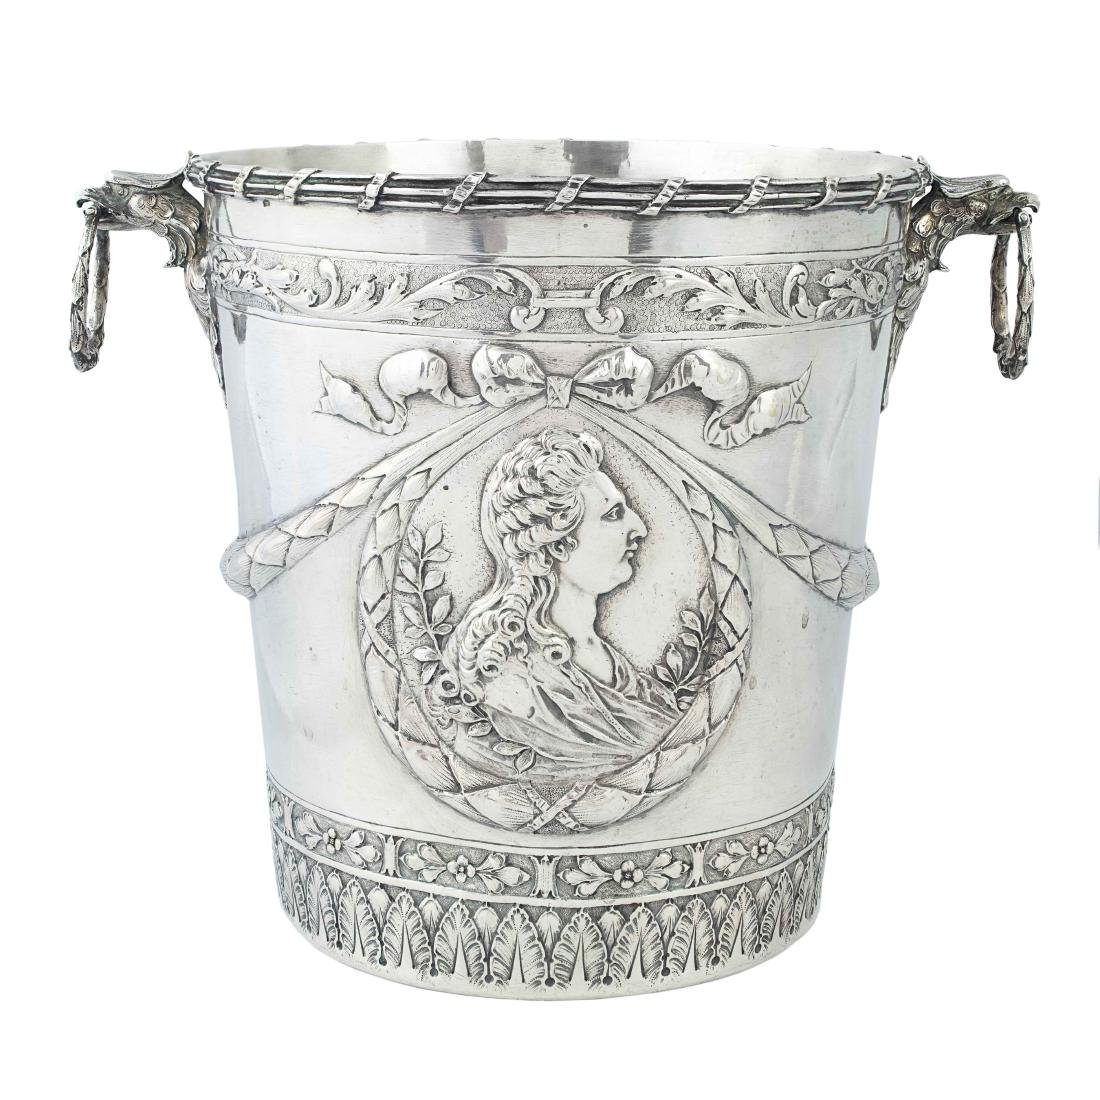 A German silver ice bucket, Hanau, circa 1900